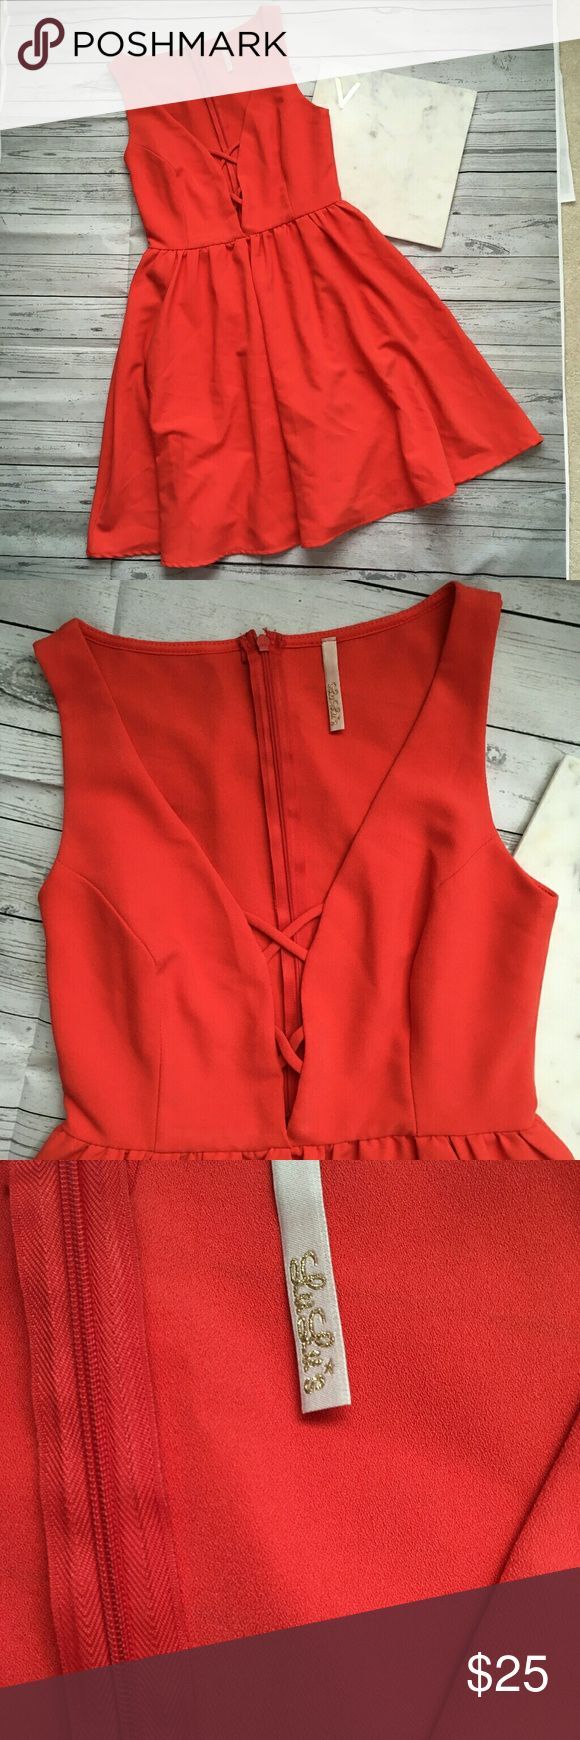 lulu womens small orange formal dress lulus strapp gently used with no flaws formal dress with low v-neck  armpit to armpit = 14.5 inches length = 33 inches Lulu's Dresses Mini